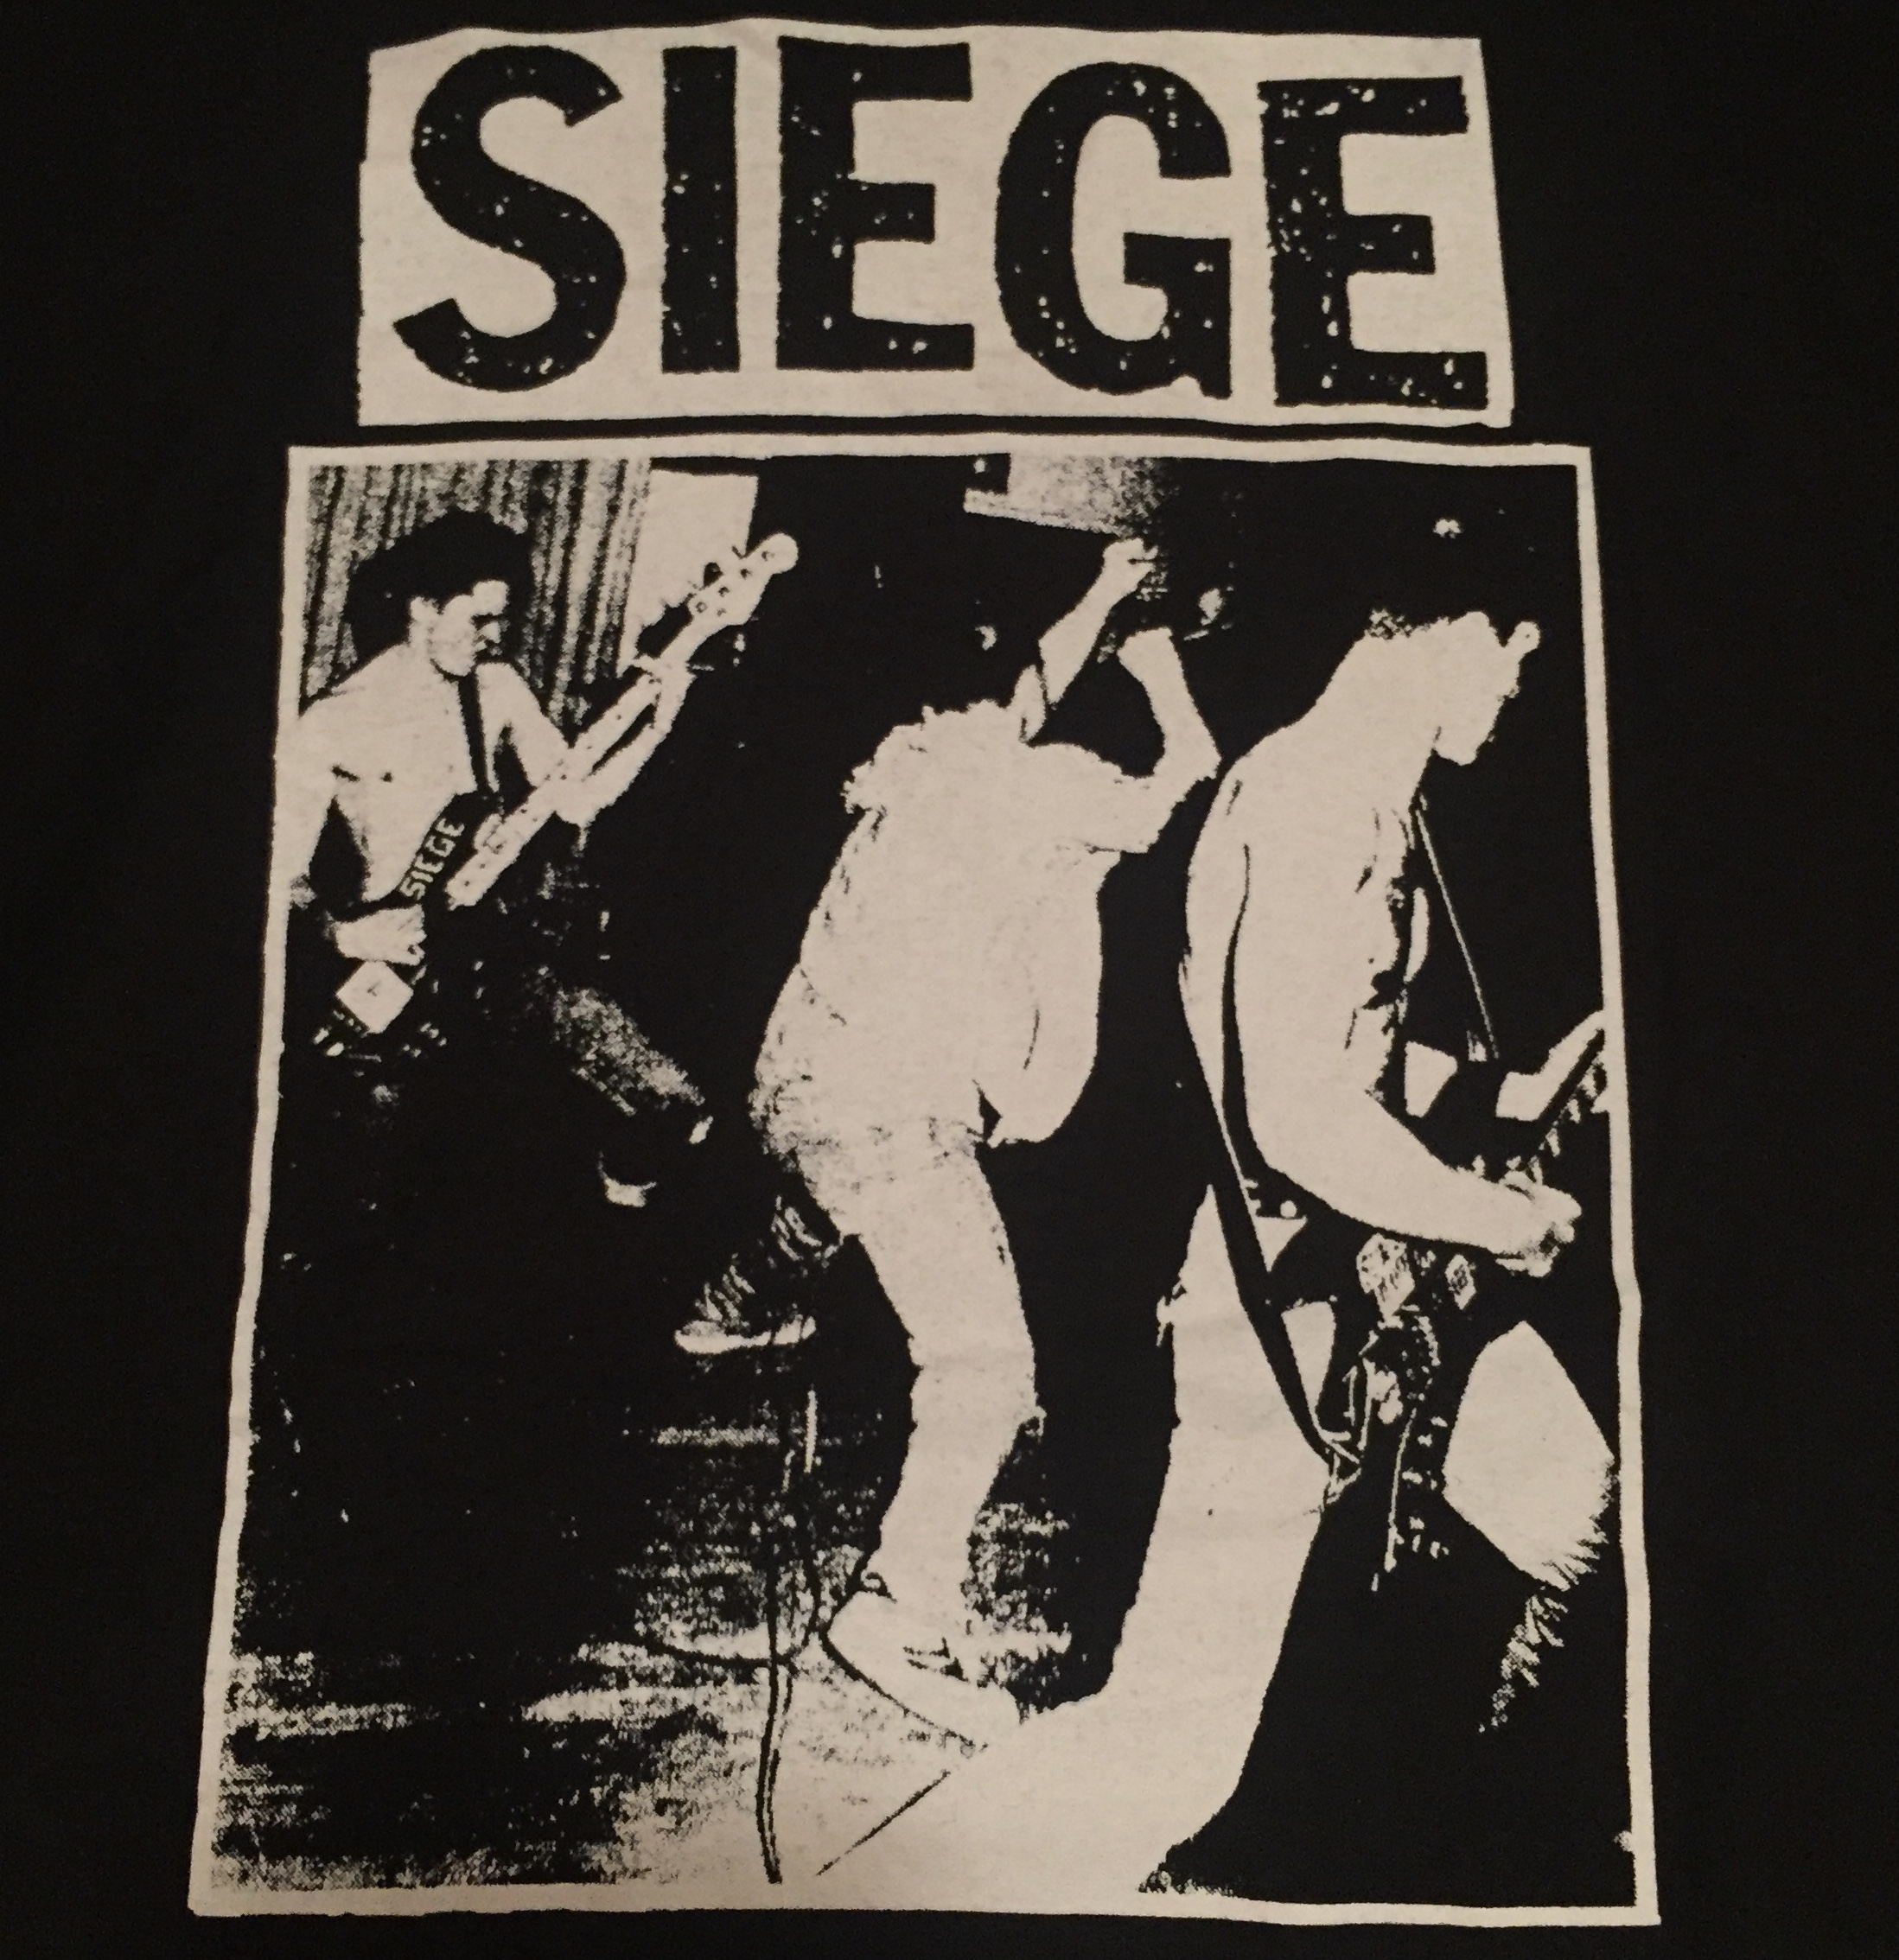 Siege - Band - Shirt